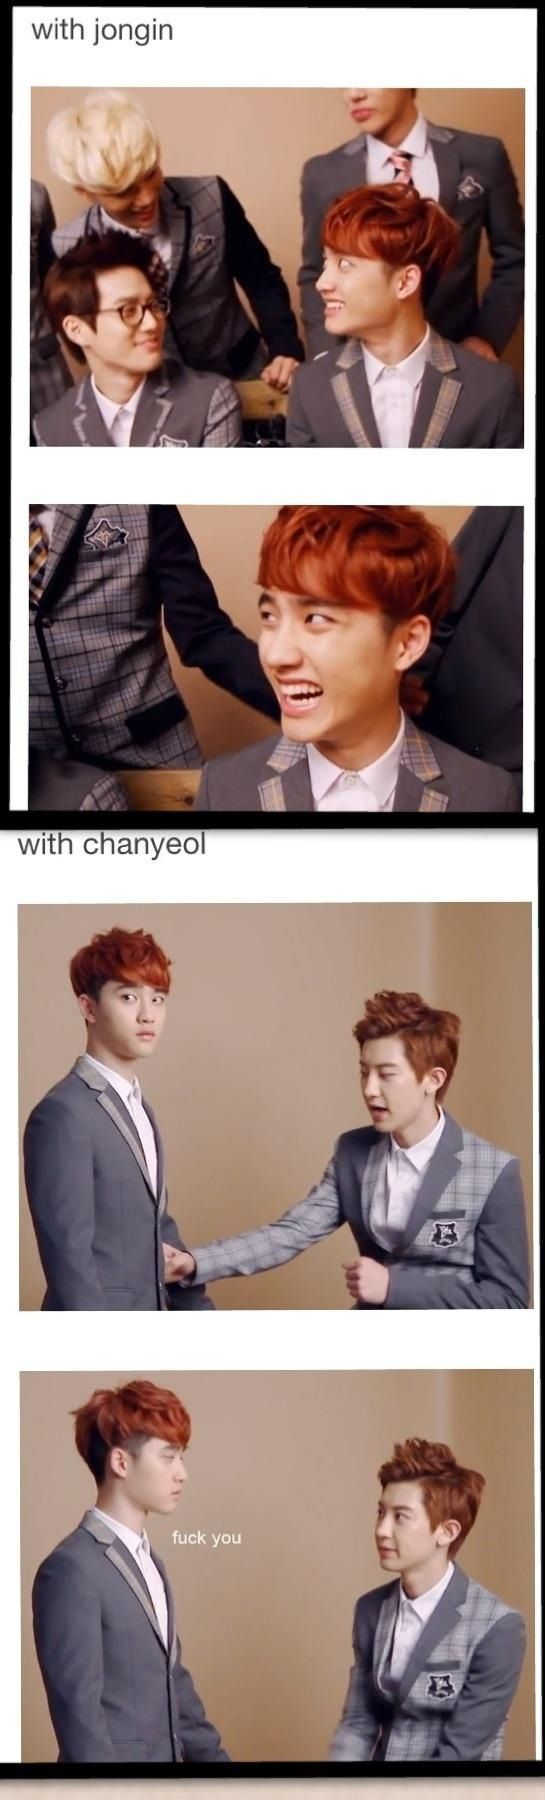 This is so true though. Kai and Chanyeol are on complete opposite ends for Kyungsoo